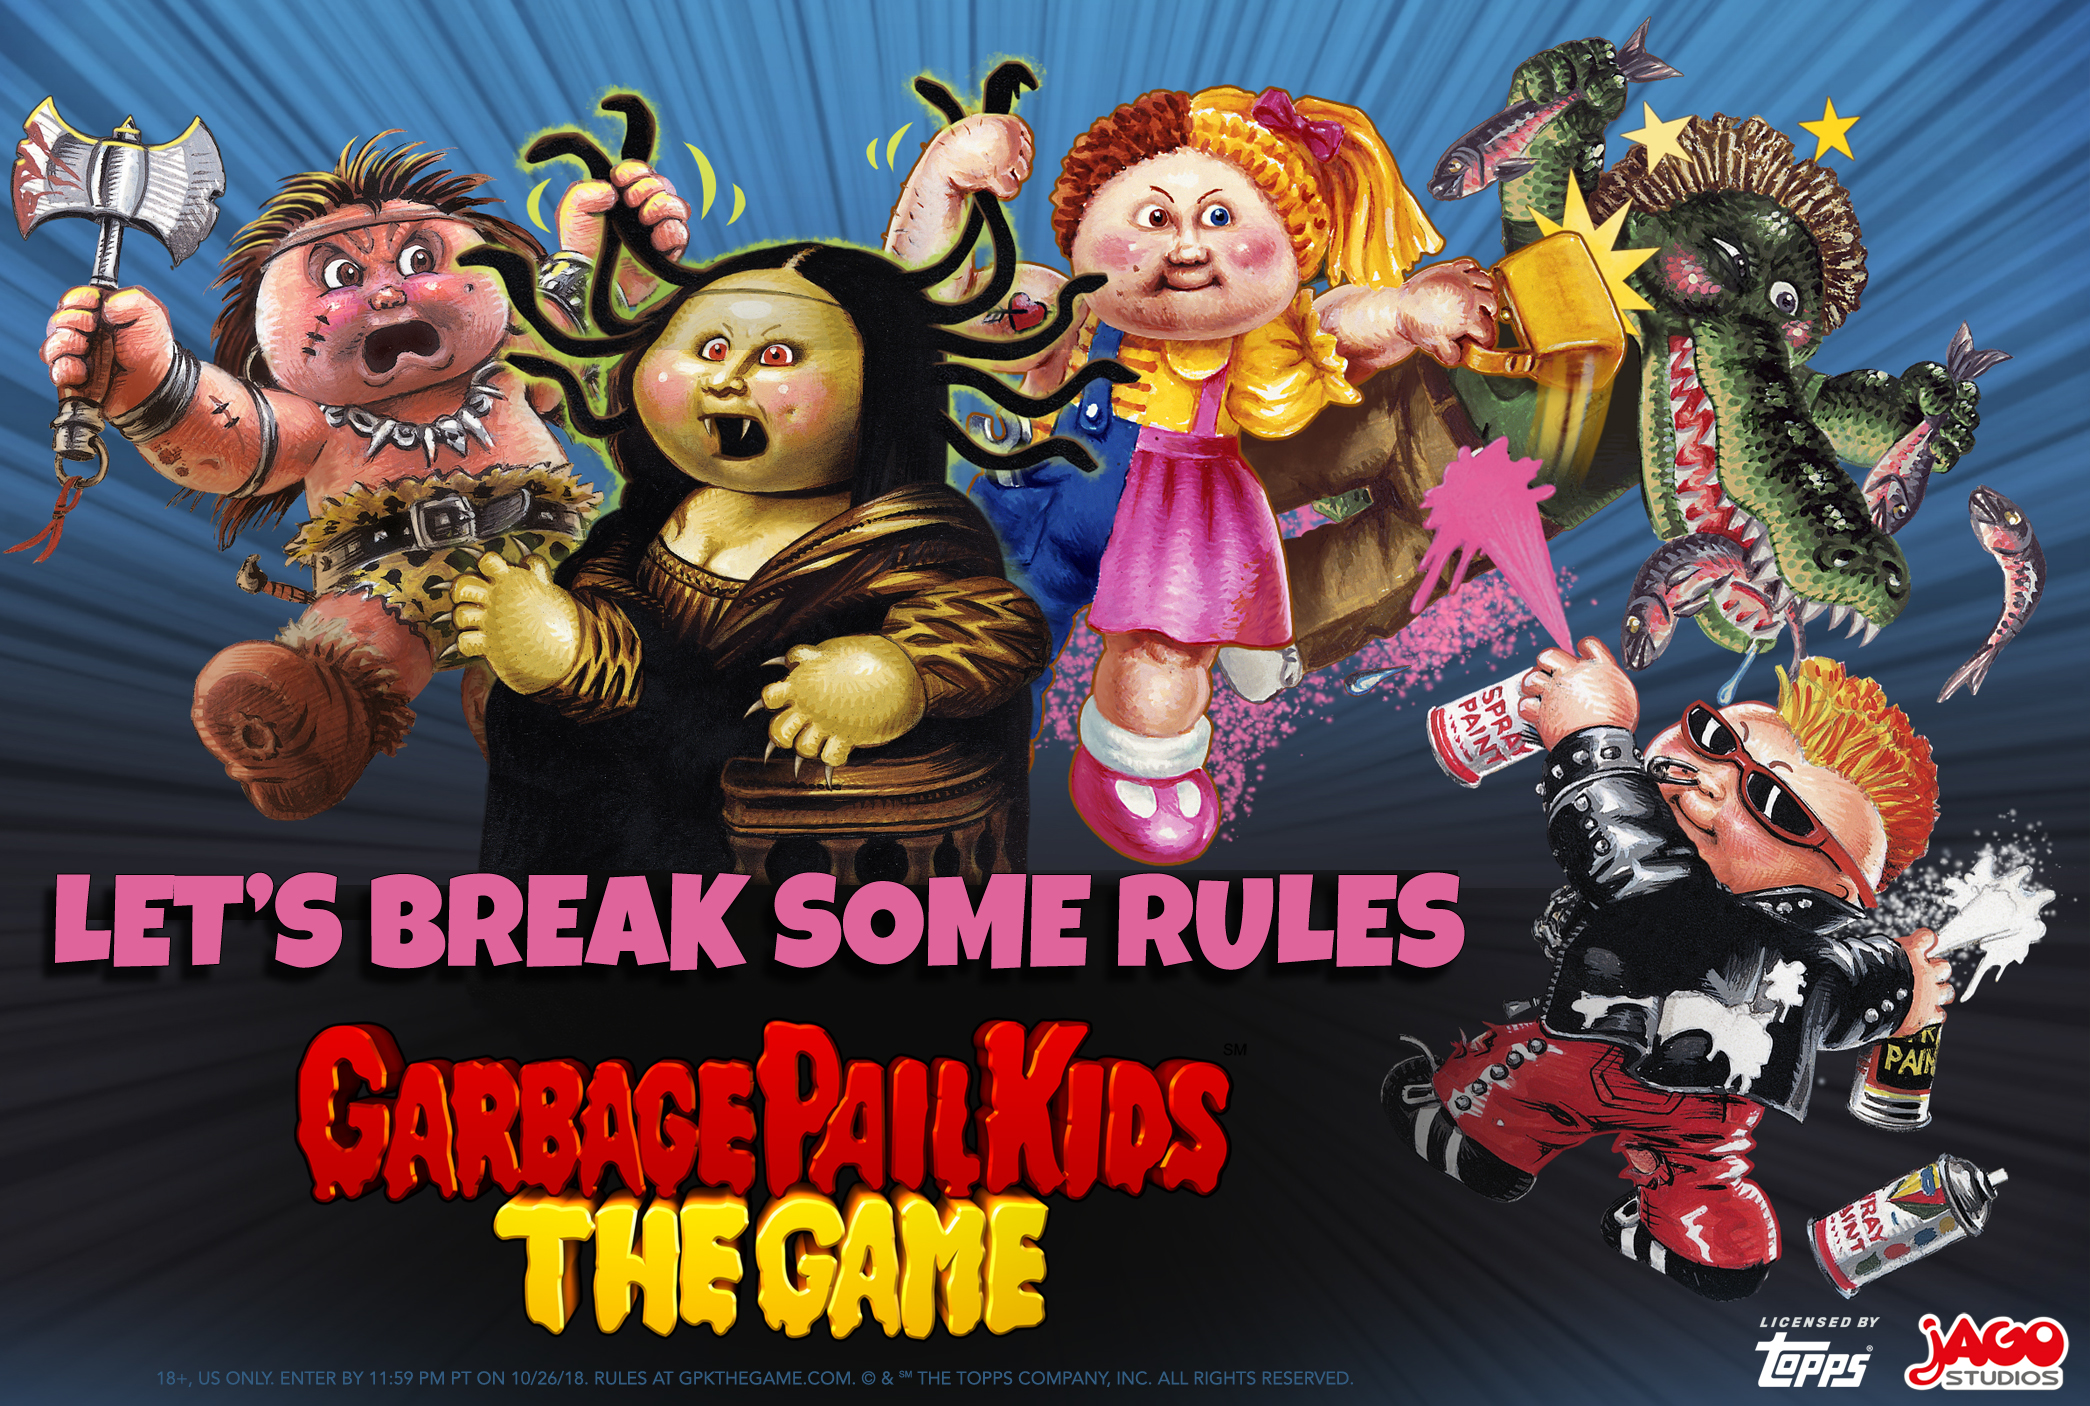 gpk_break_rules